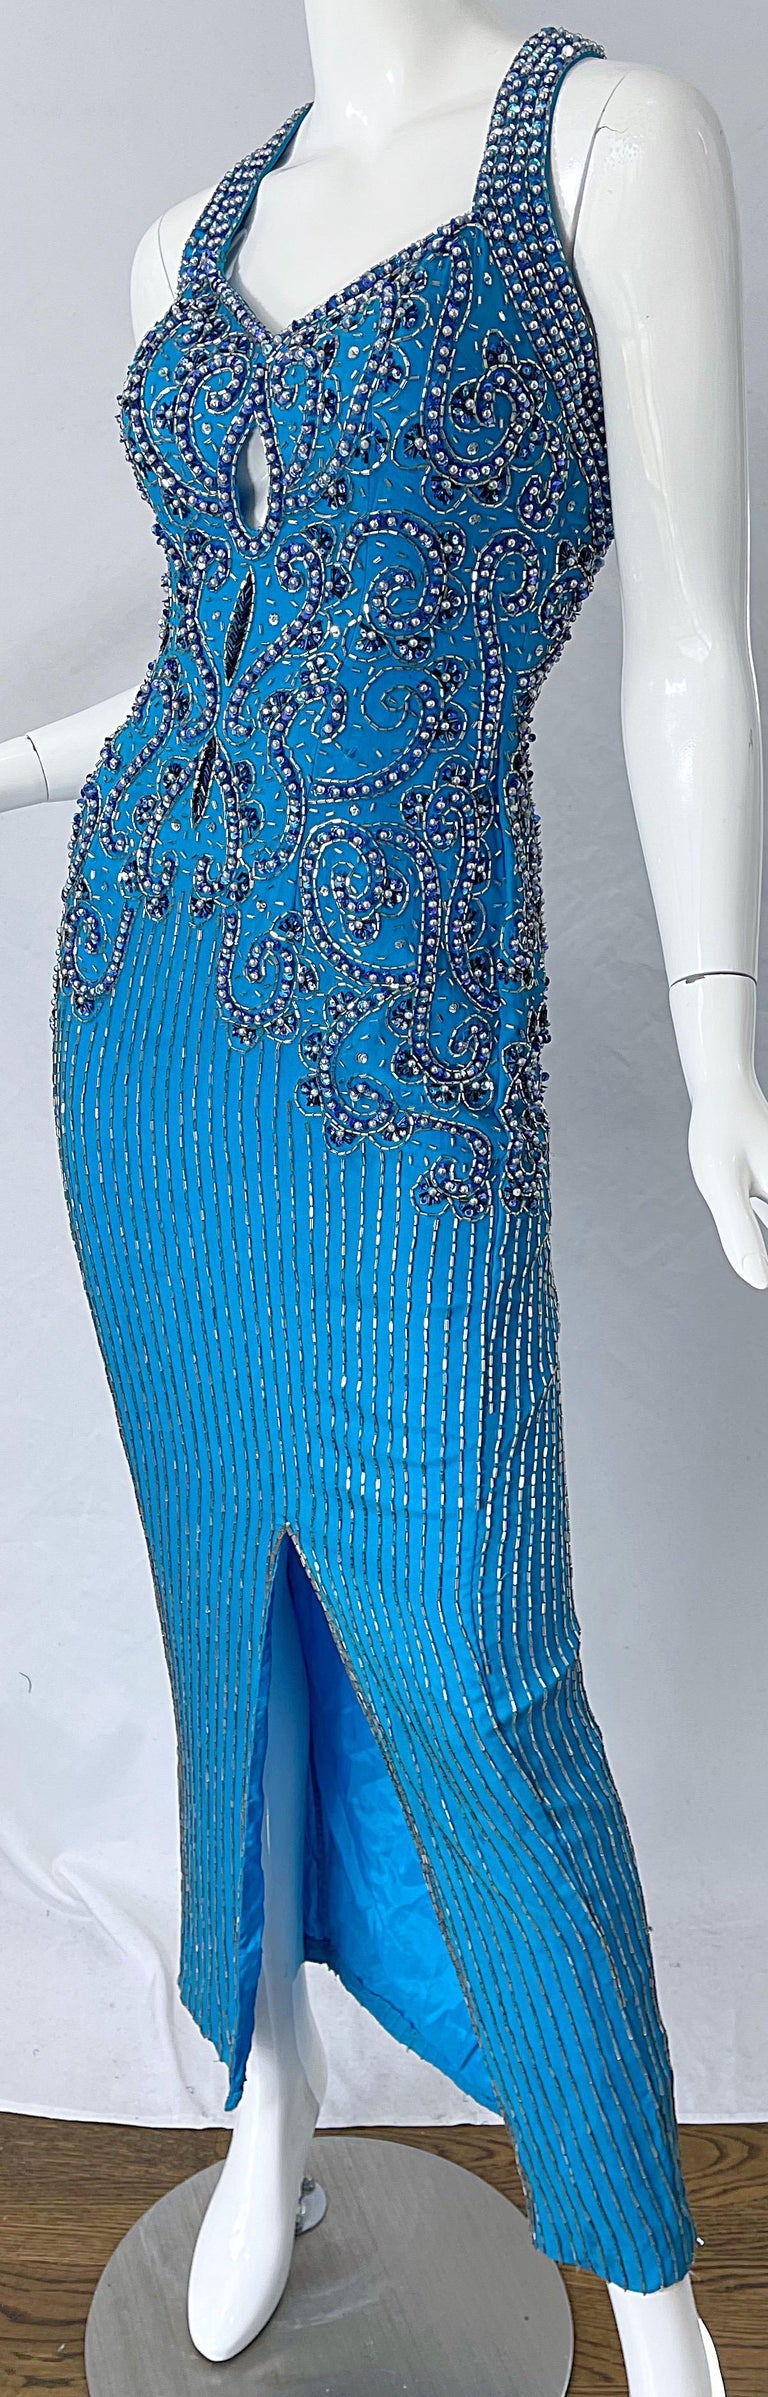 1980s Ted Lapidus Size 6 Turquoise Blue Silk Beaded Sequin Vintage 80s Gown For Sale 5